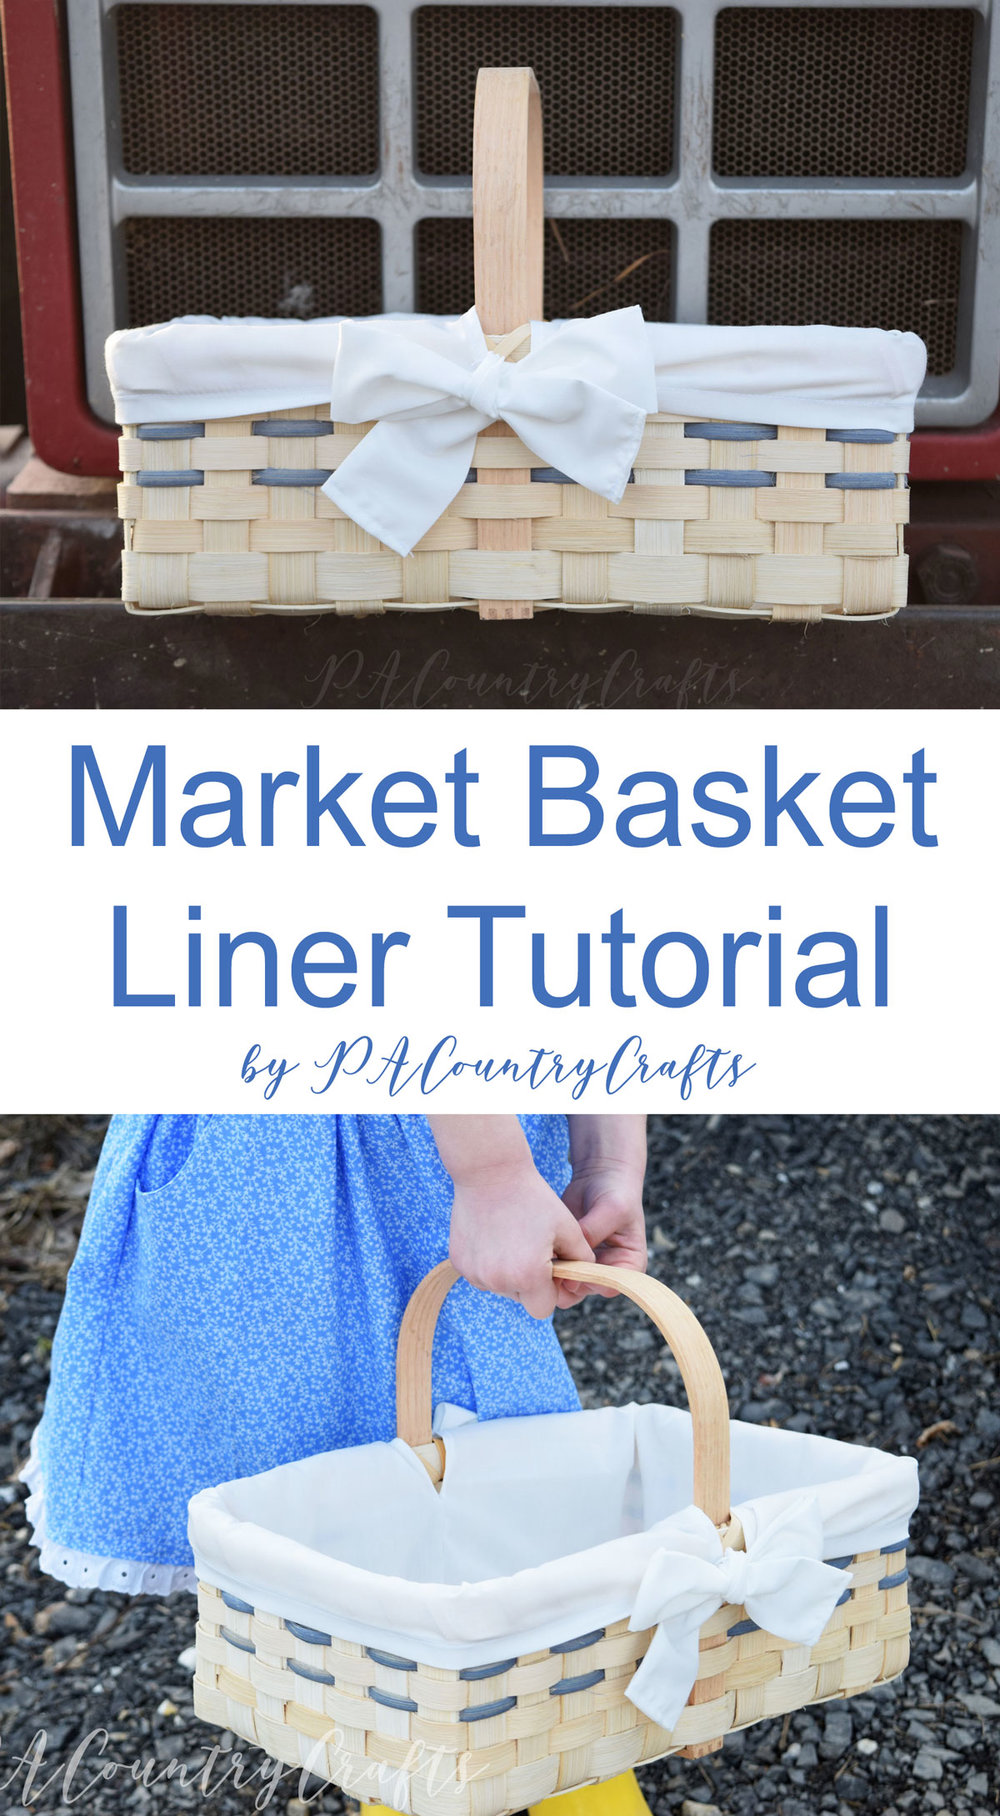 Sewing tutorial for a market basket with a handle.